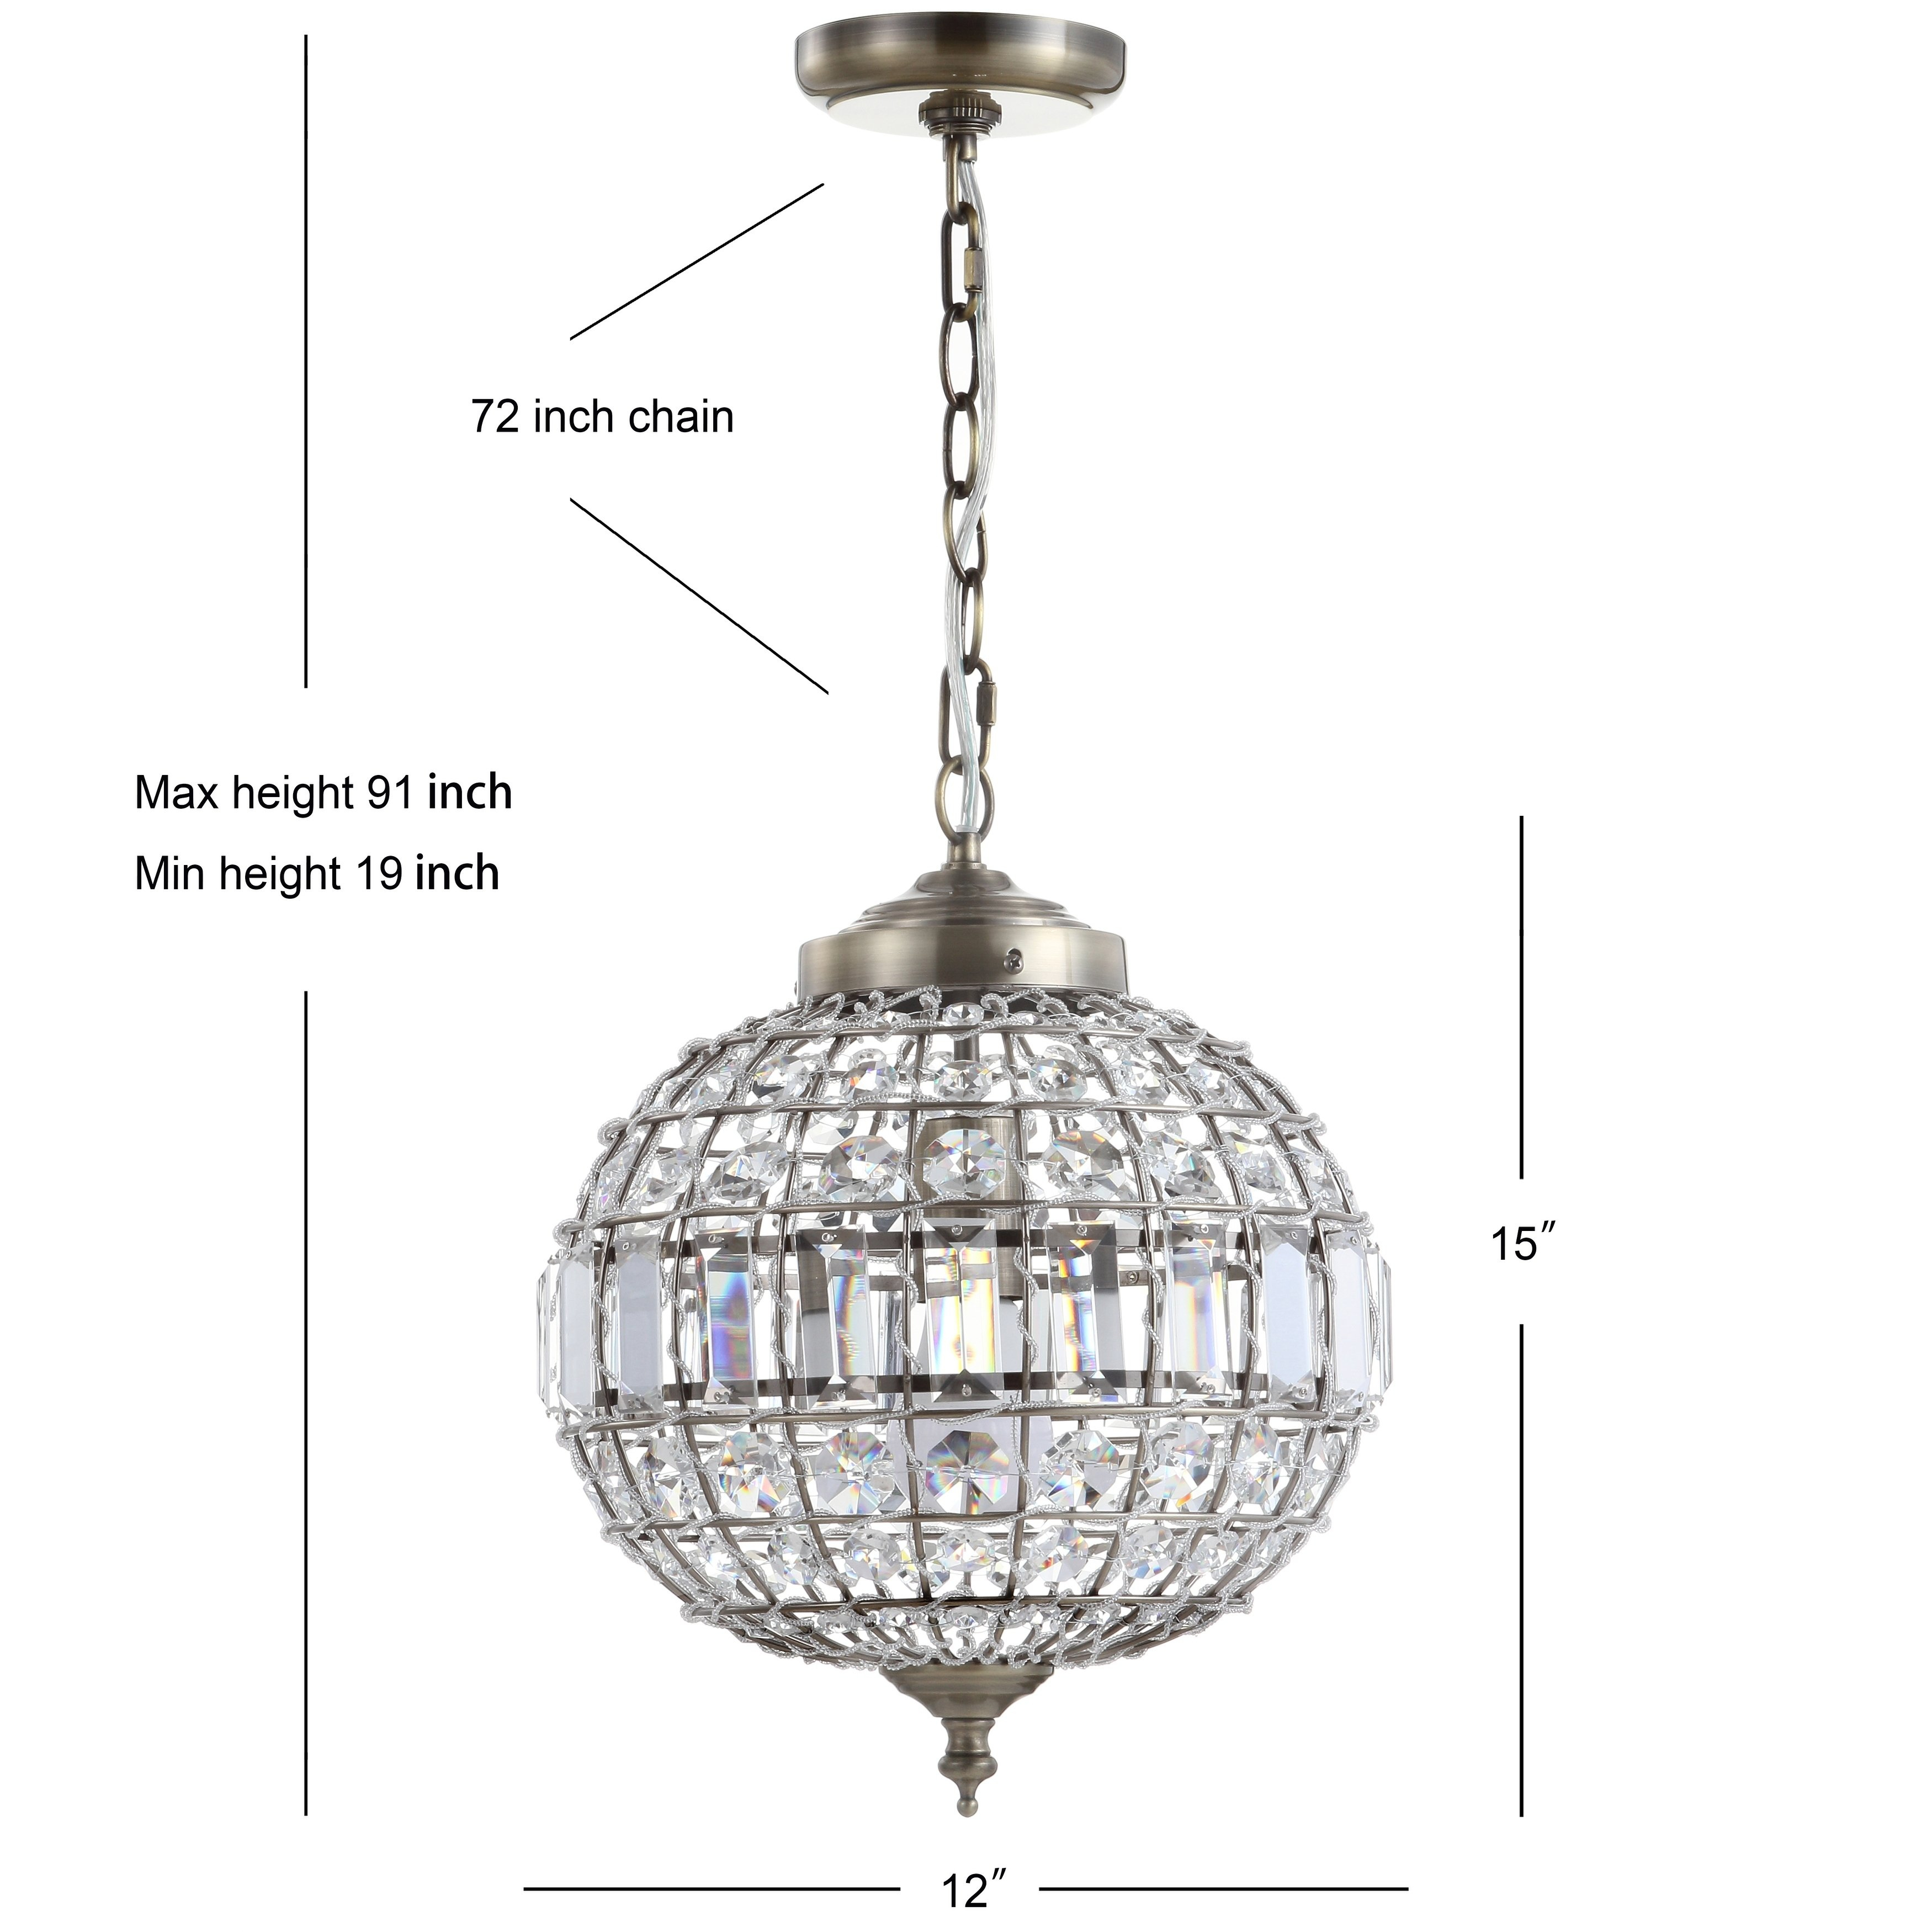 Wiring Diagram For Electric Chandelier - Wiring Diagrams Lose - Chandelier Wiring Diagram